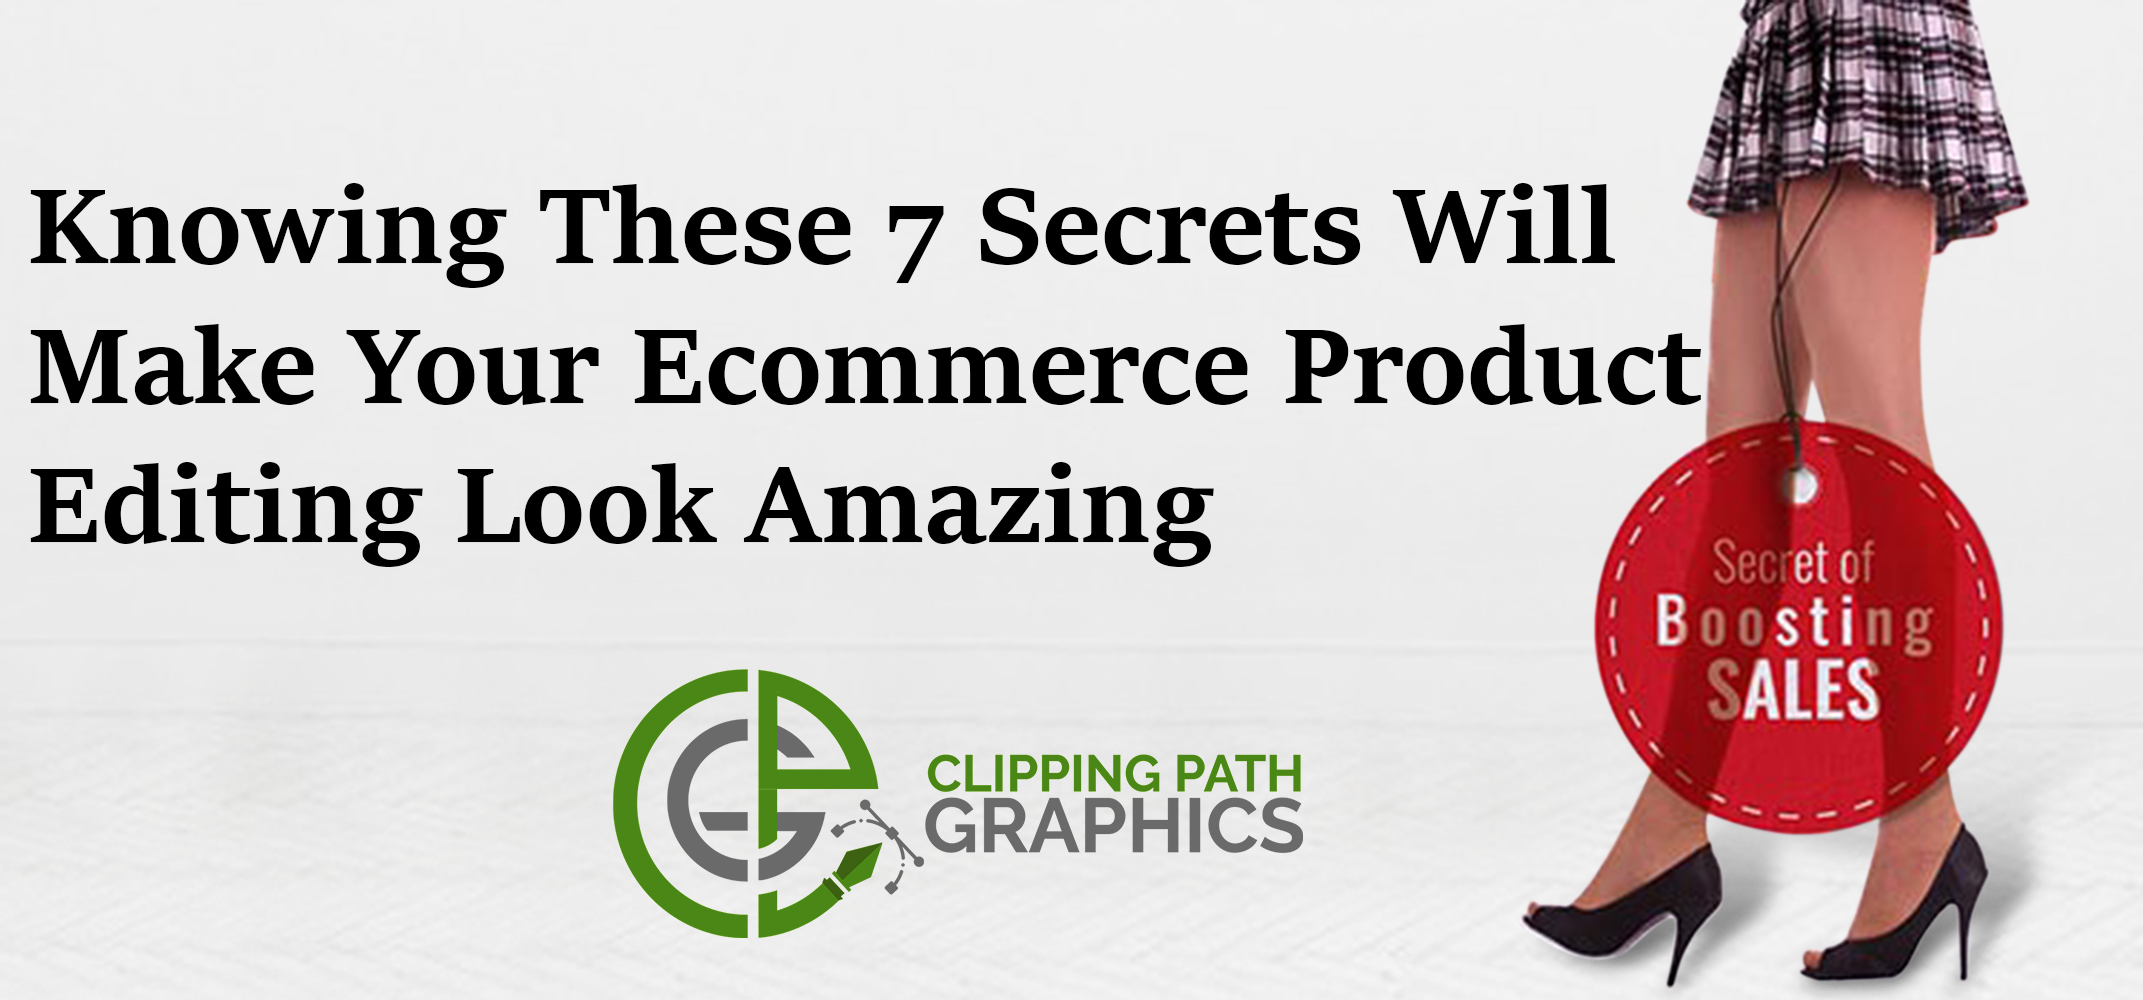 Knowing These 7 Secrets Will Make Your Ecommerce Product Editing Look Amazing